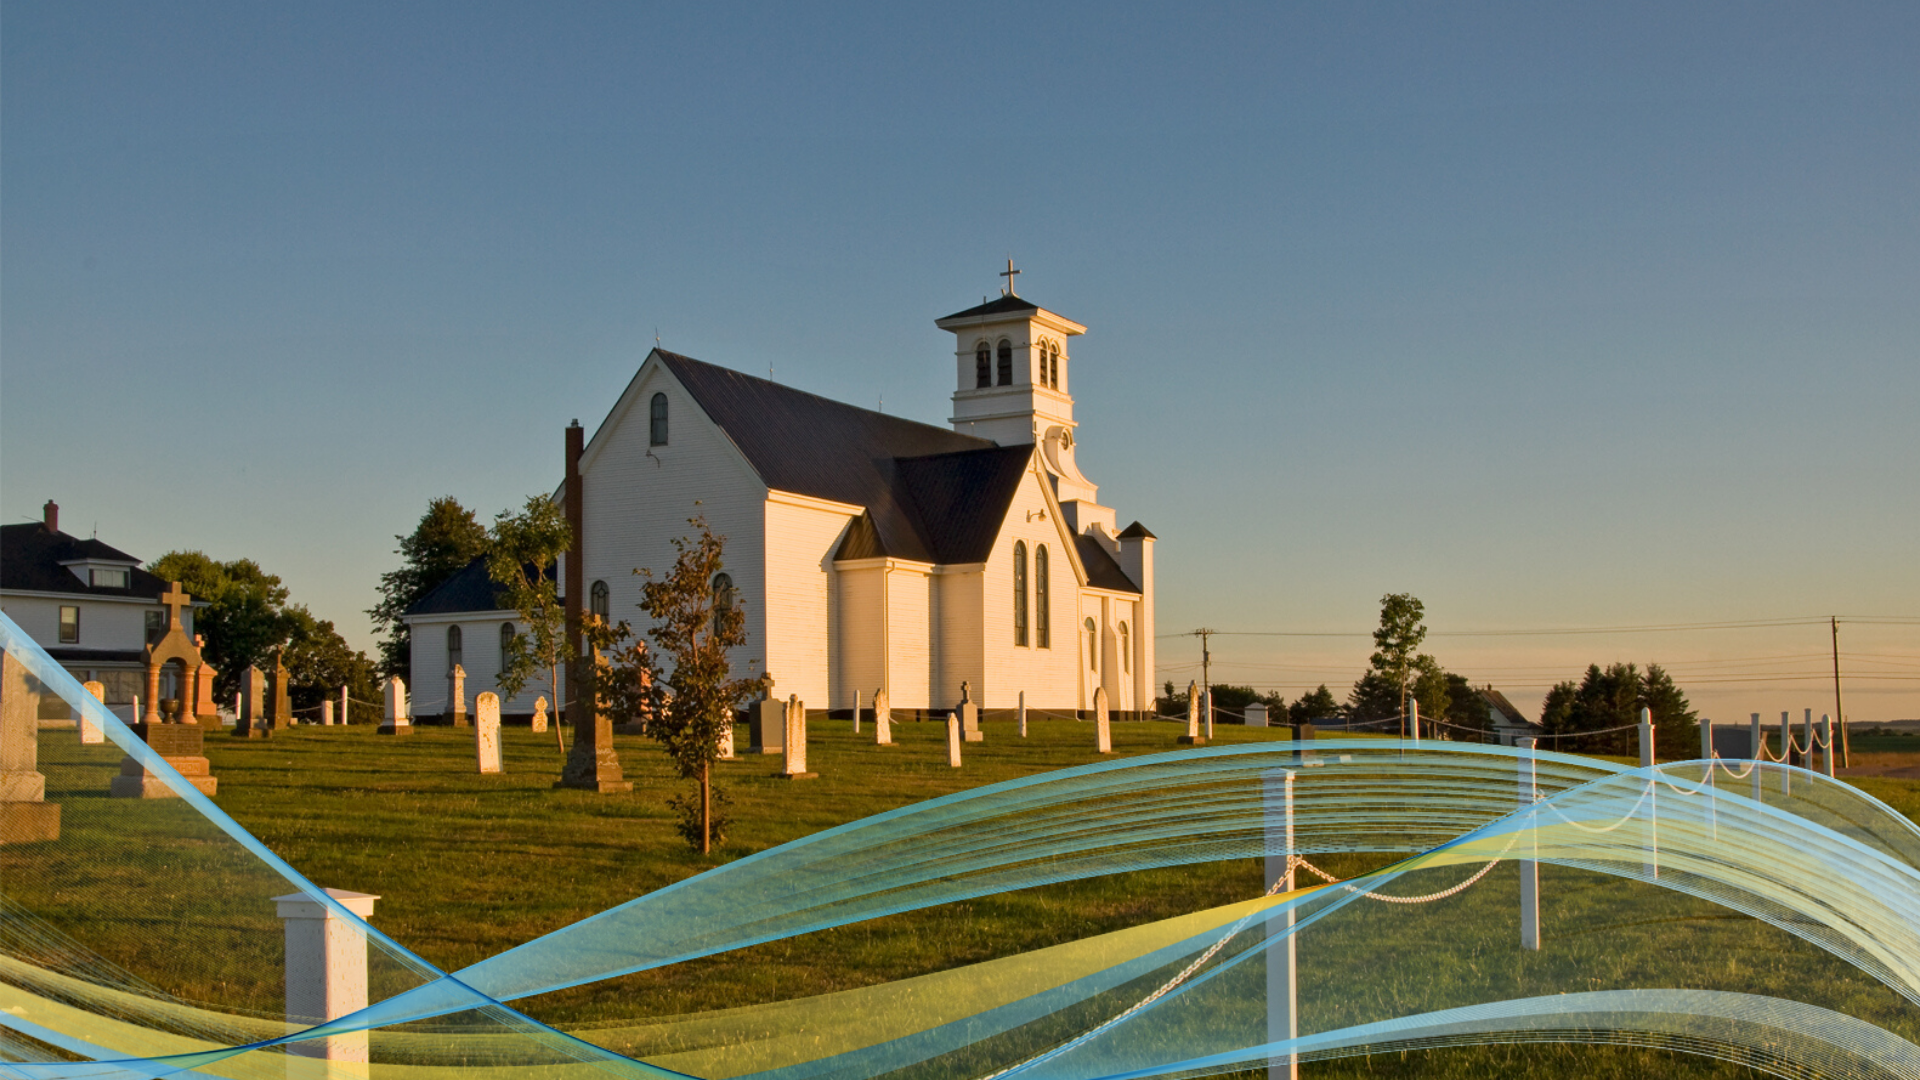 Image of church in Summerfield, PEI